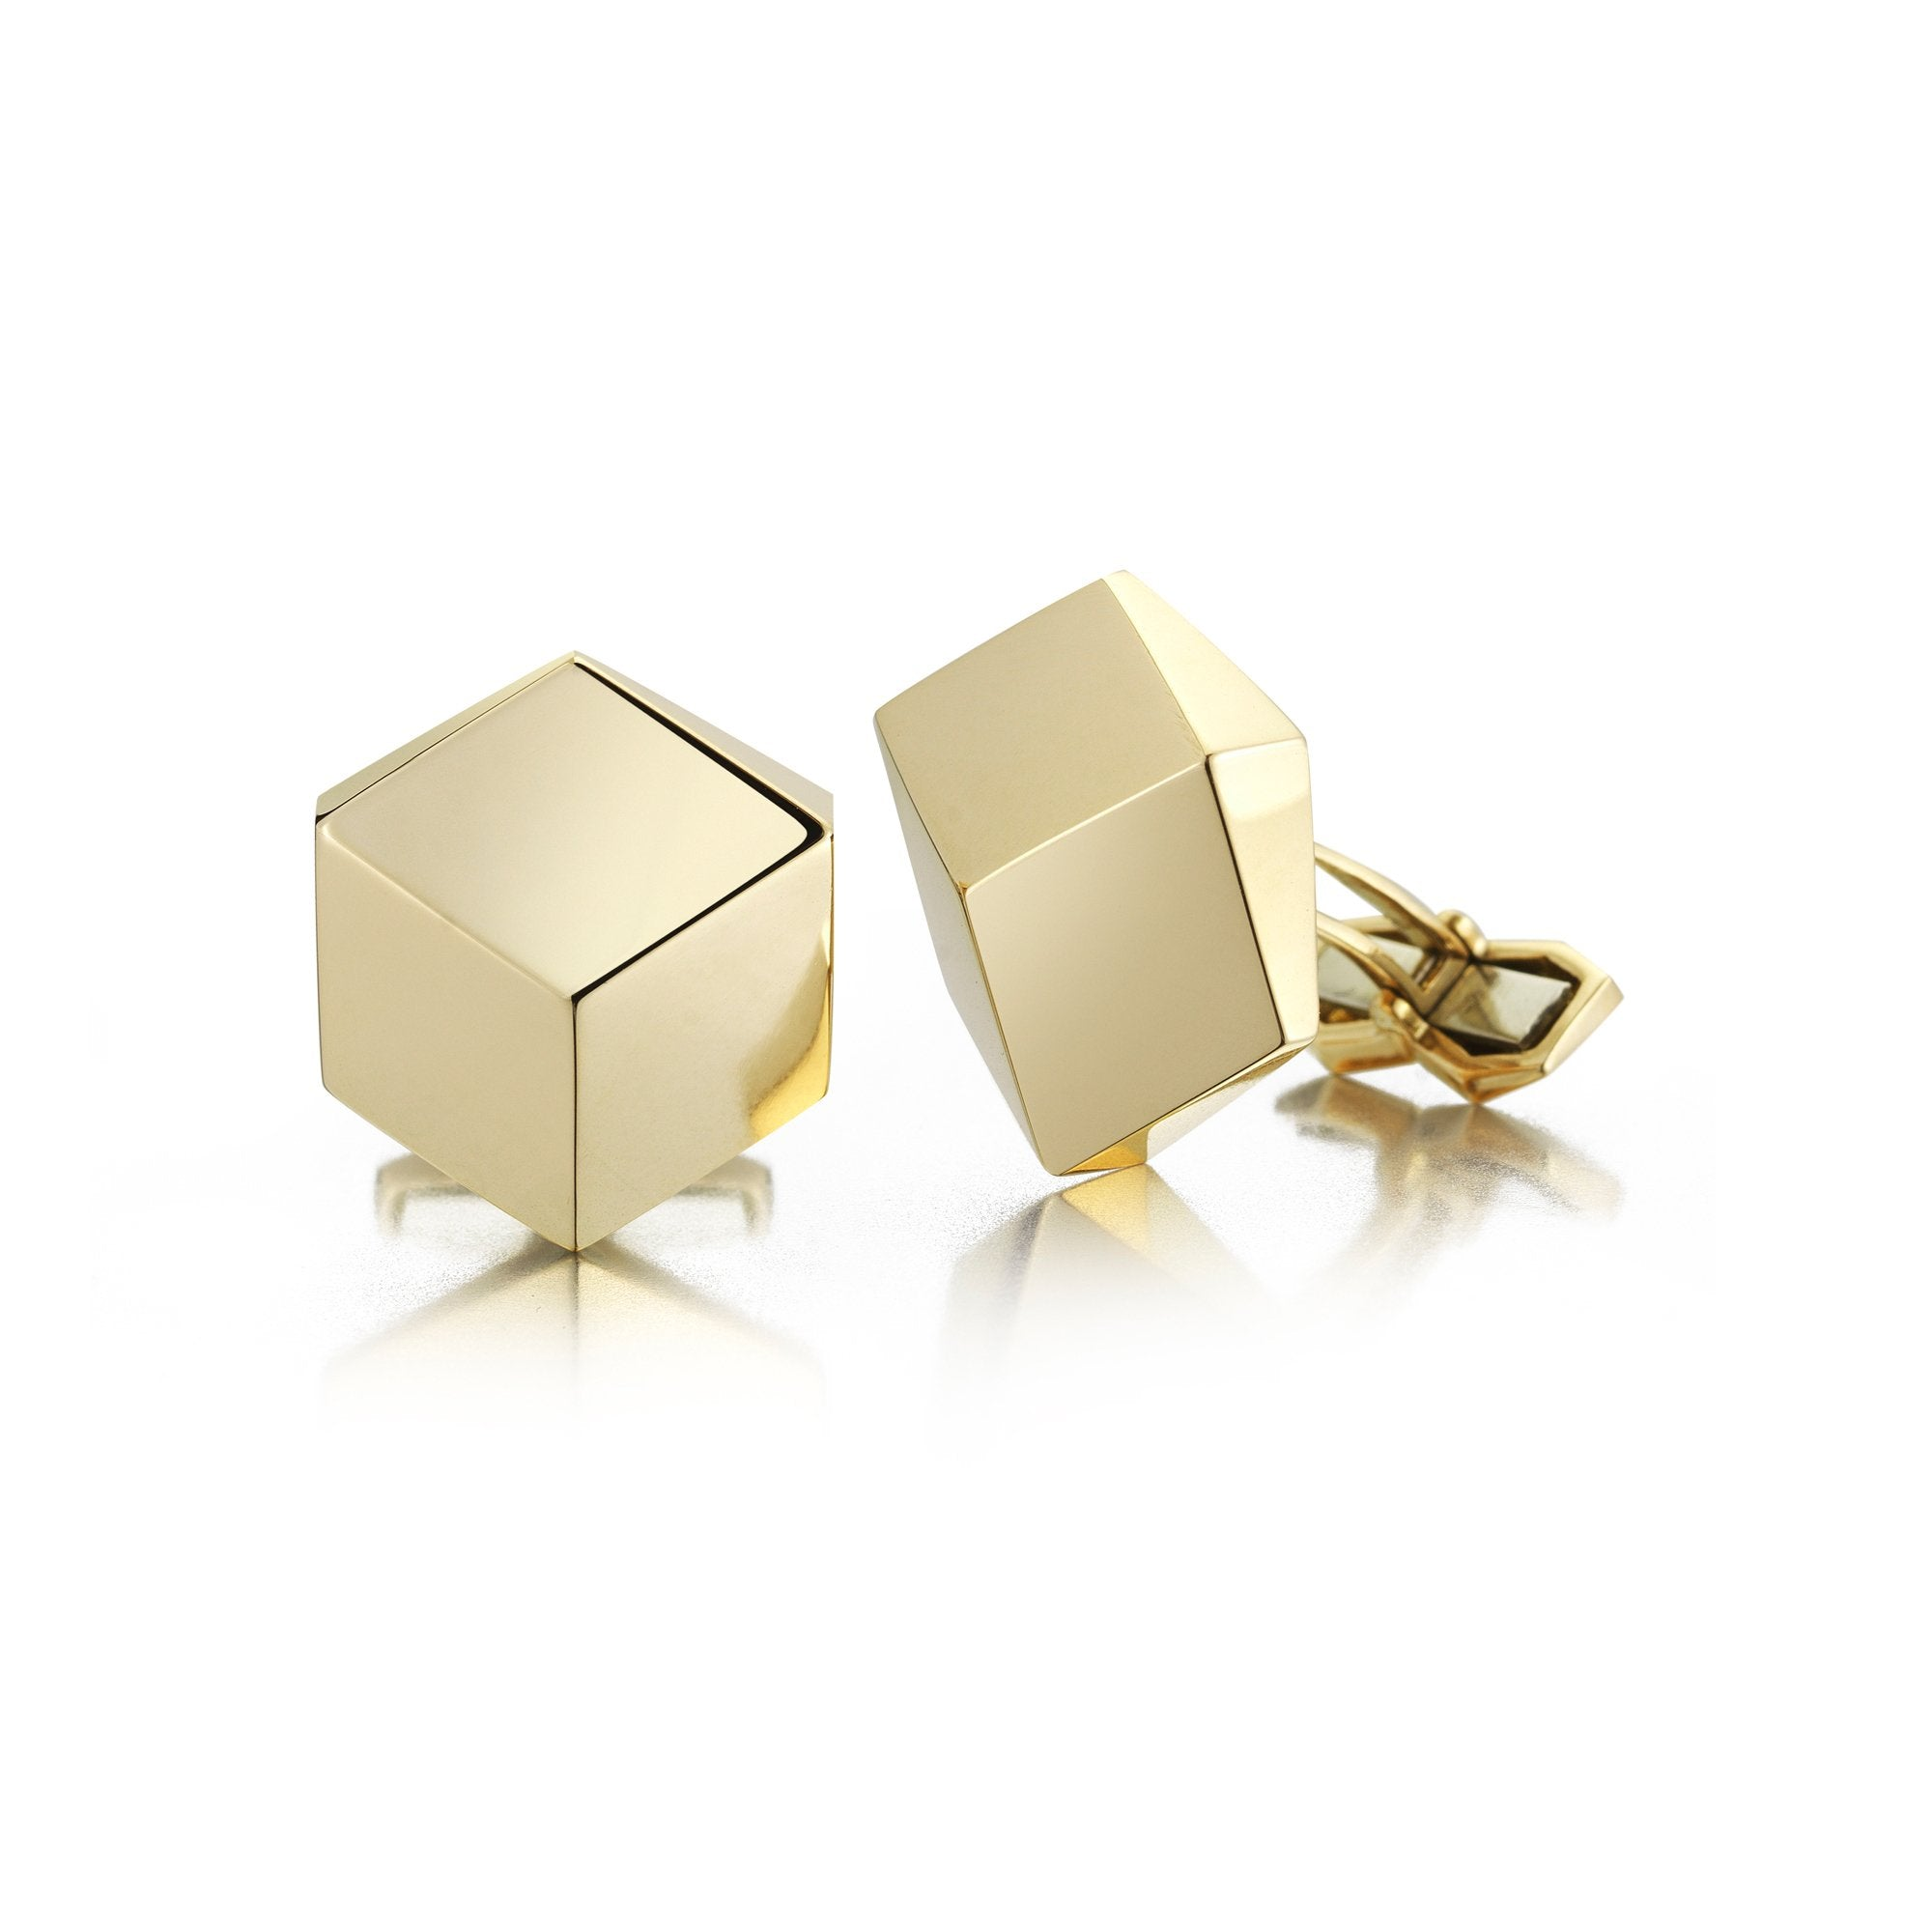 18kt Yellow Gold Cufflinks - Paolo Costagli